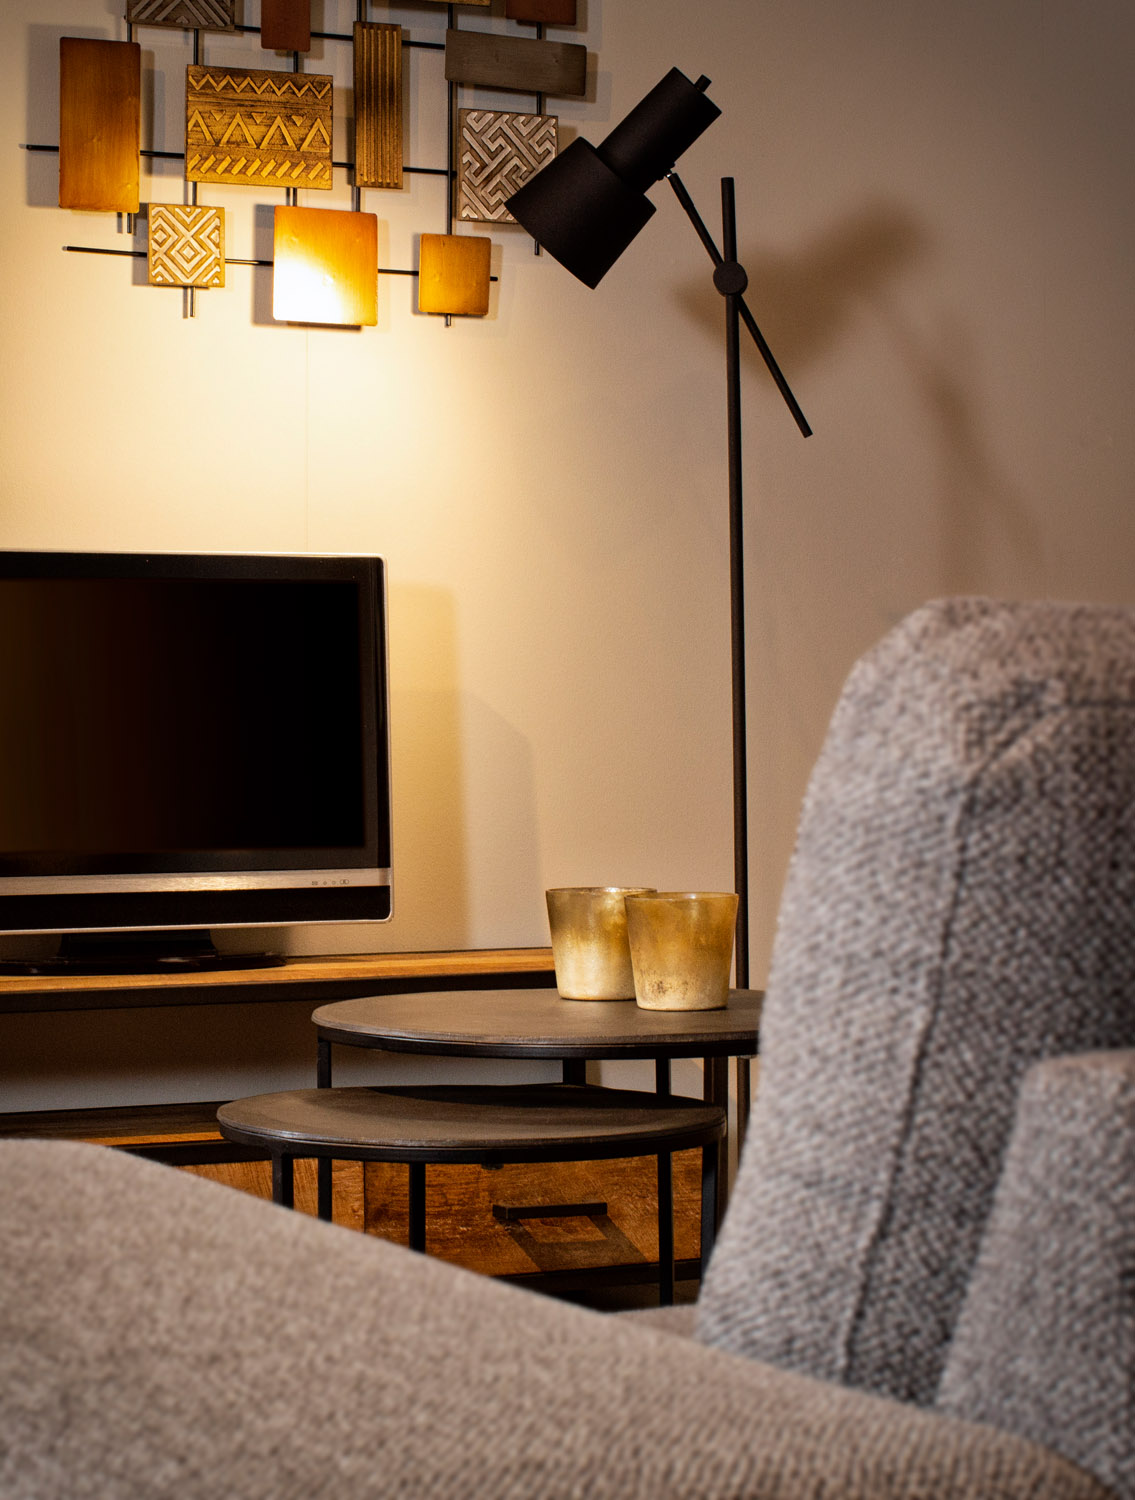 Studio Furniture Package